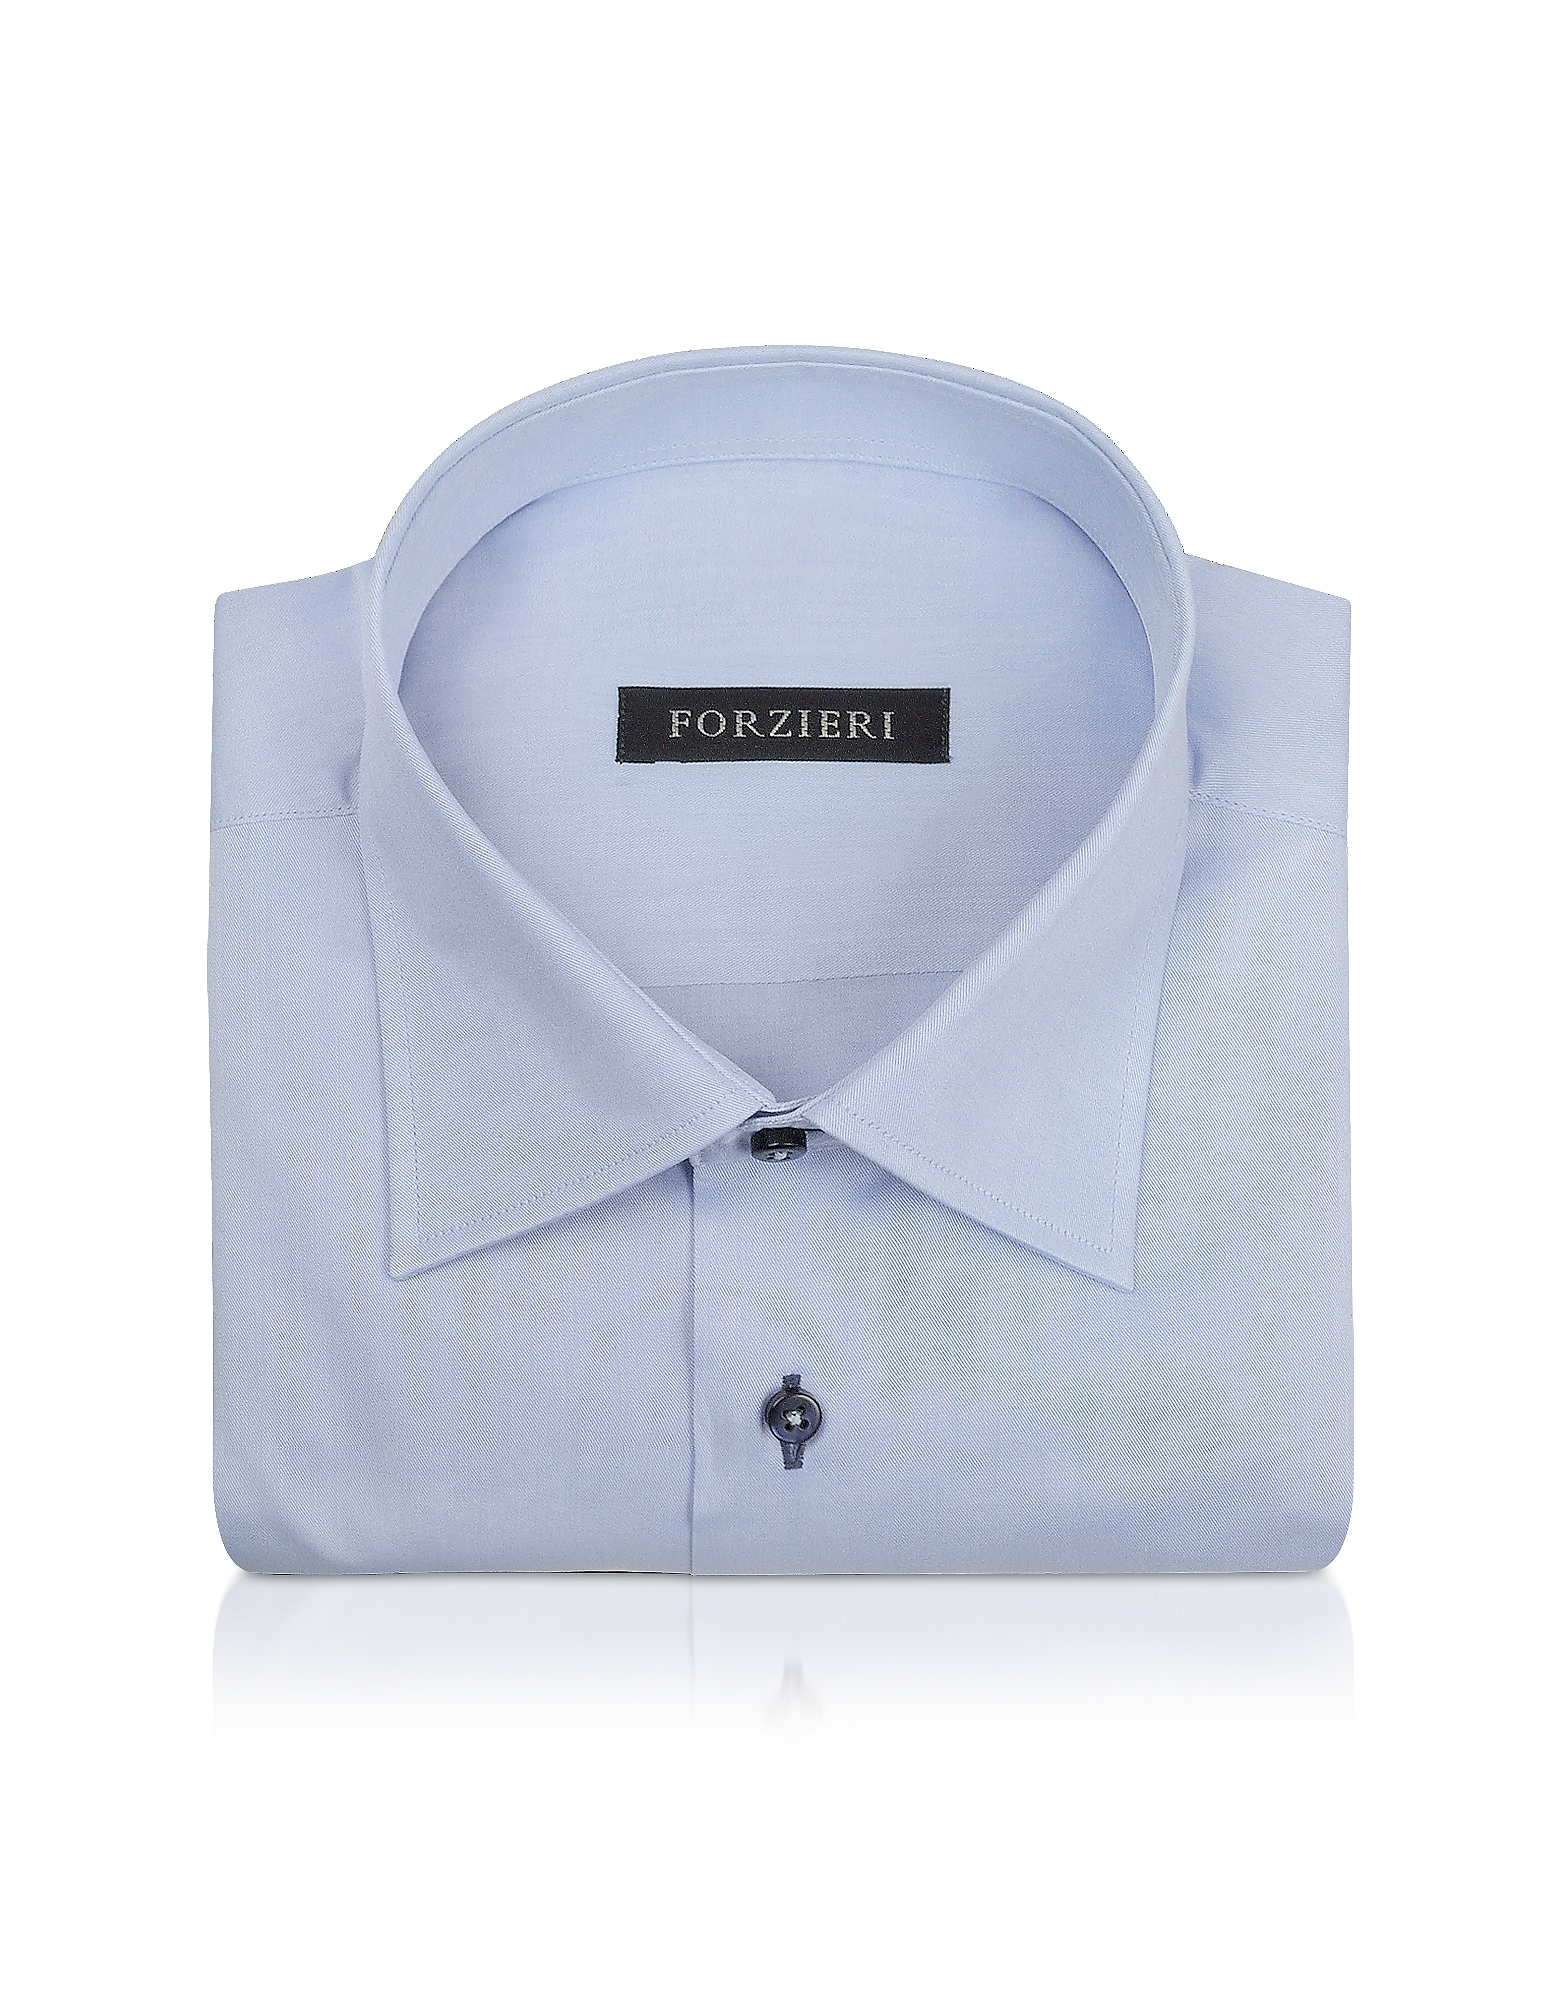 Forzieri Dress Shirts, Blue Twill Dress Shirt